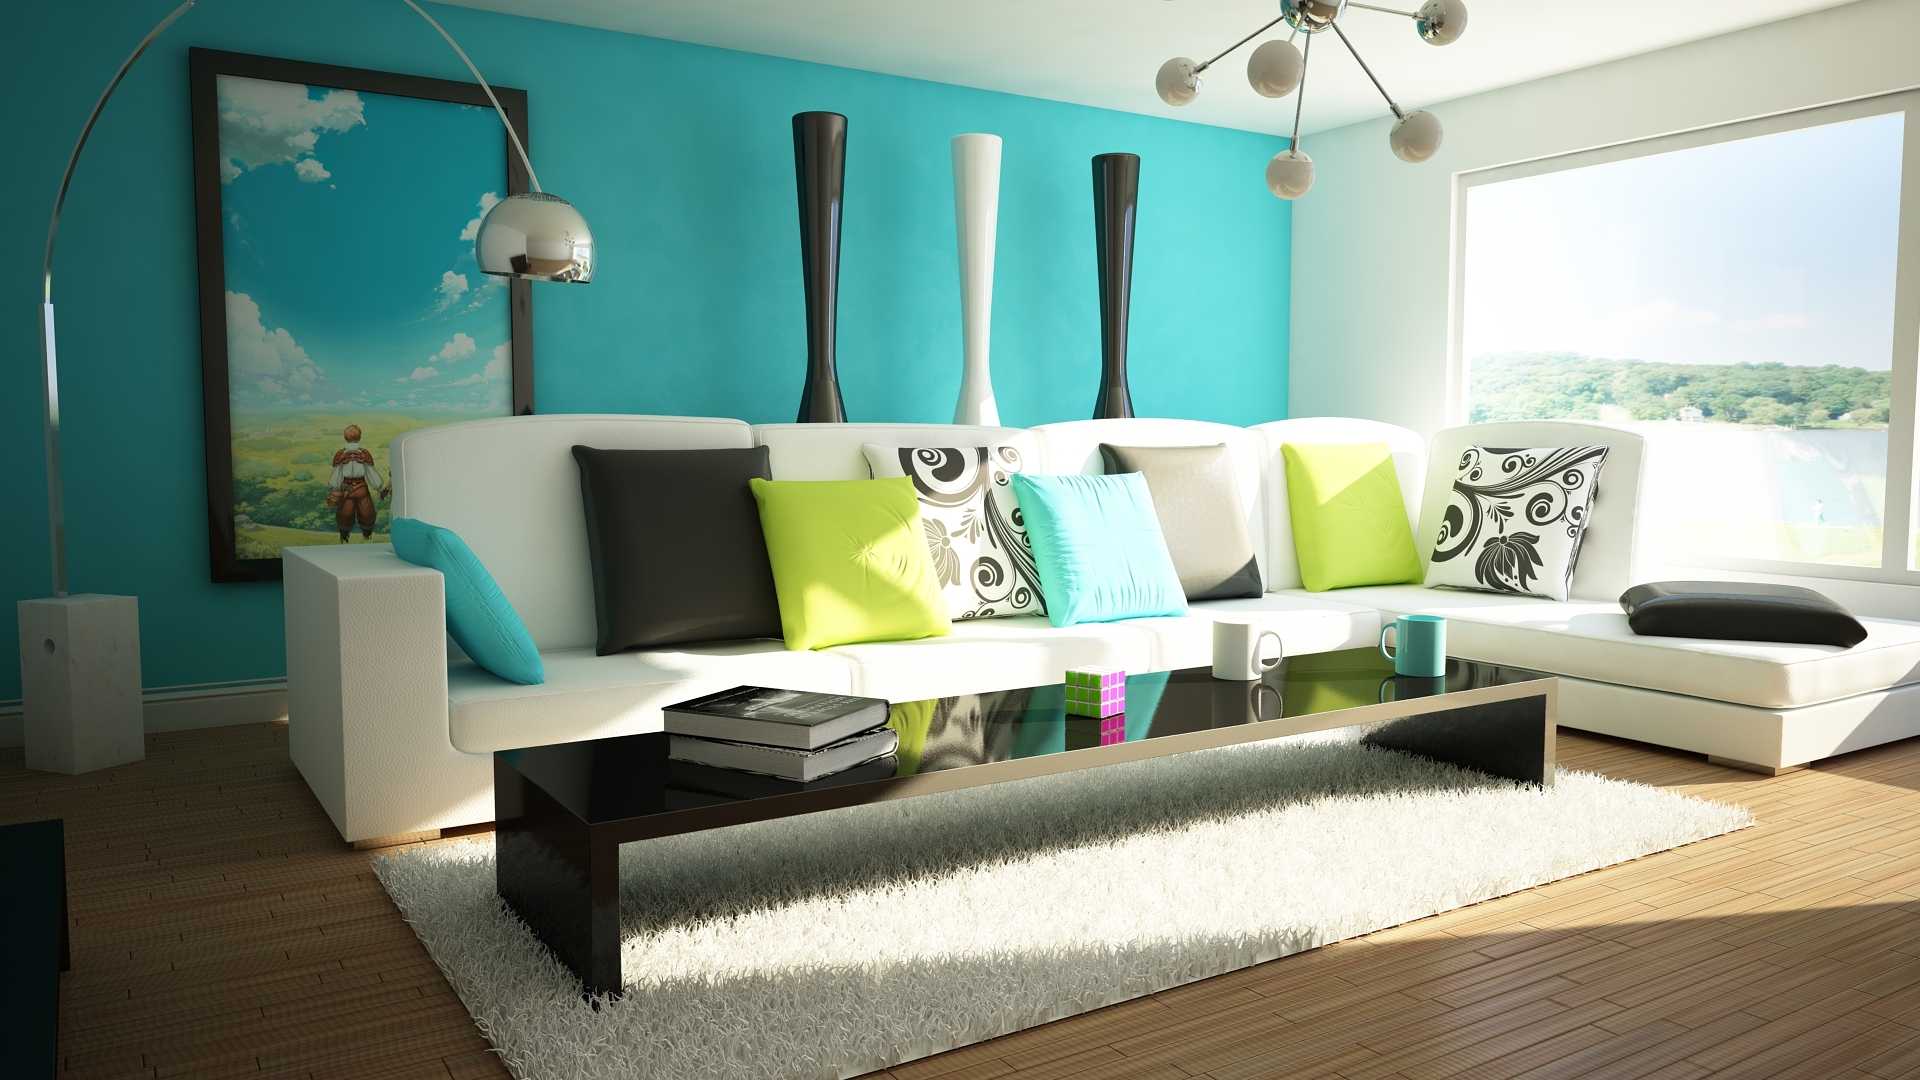 Design Bright and Cozy Living Room with Blue Wallpaper Design Slim